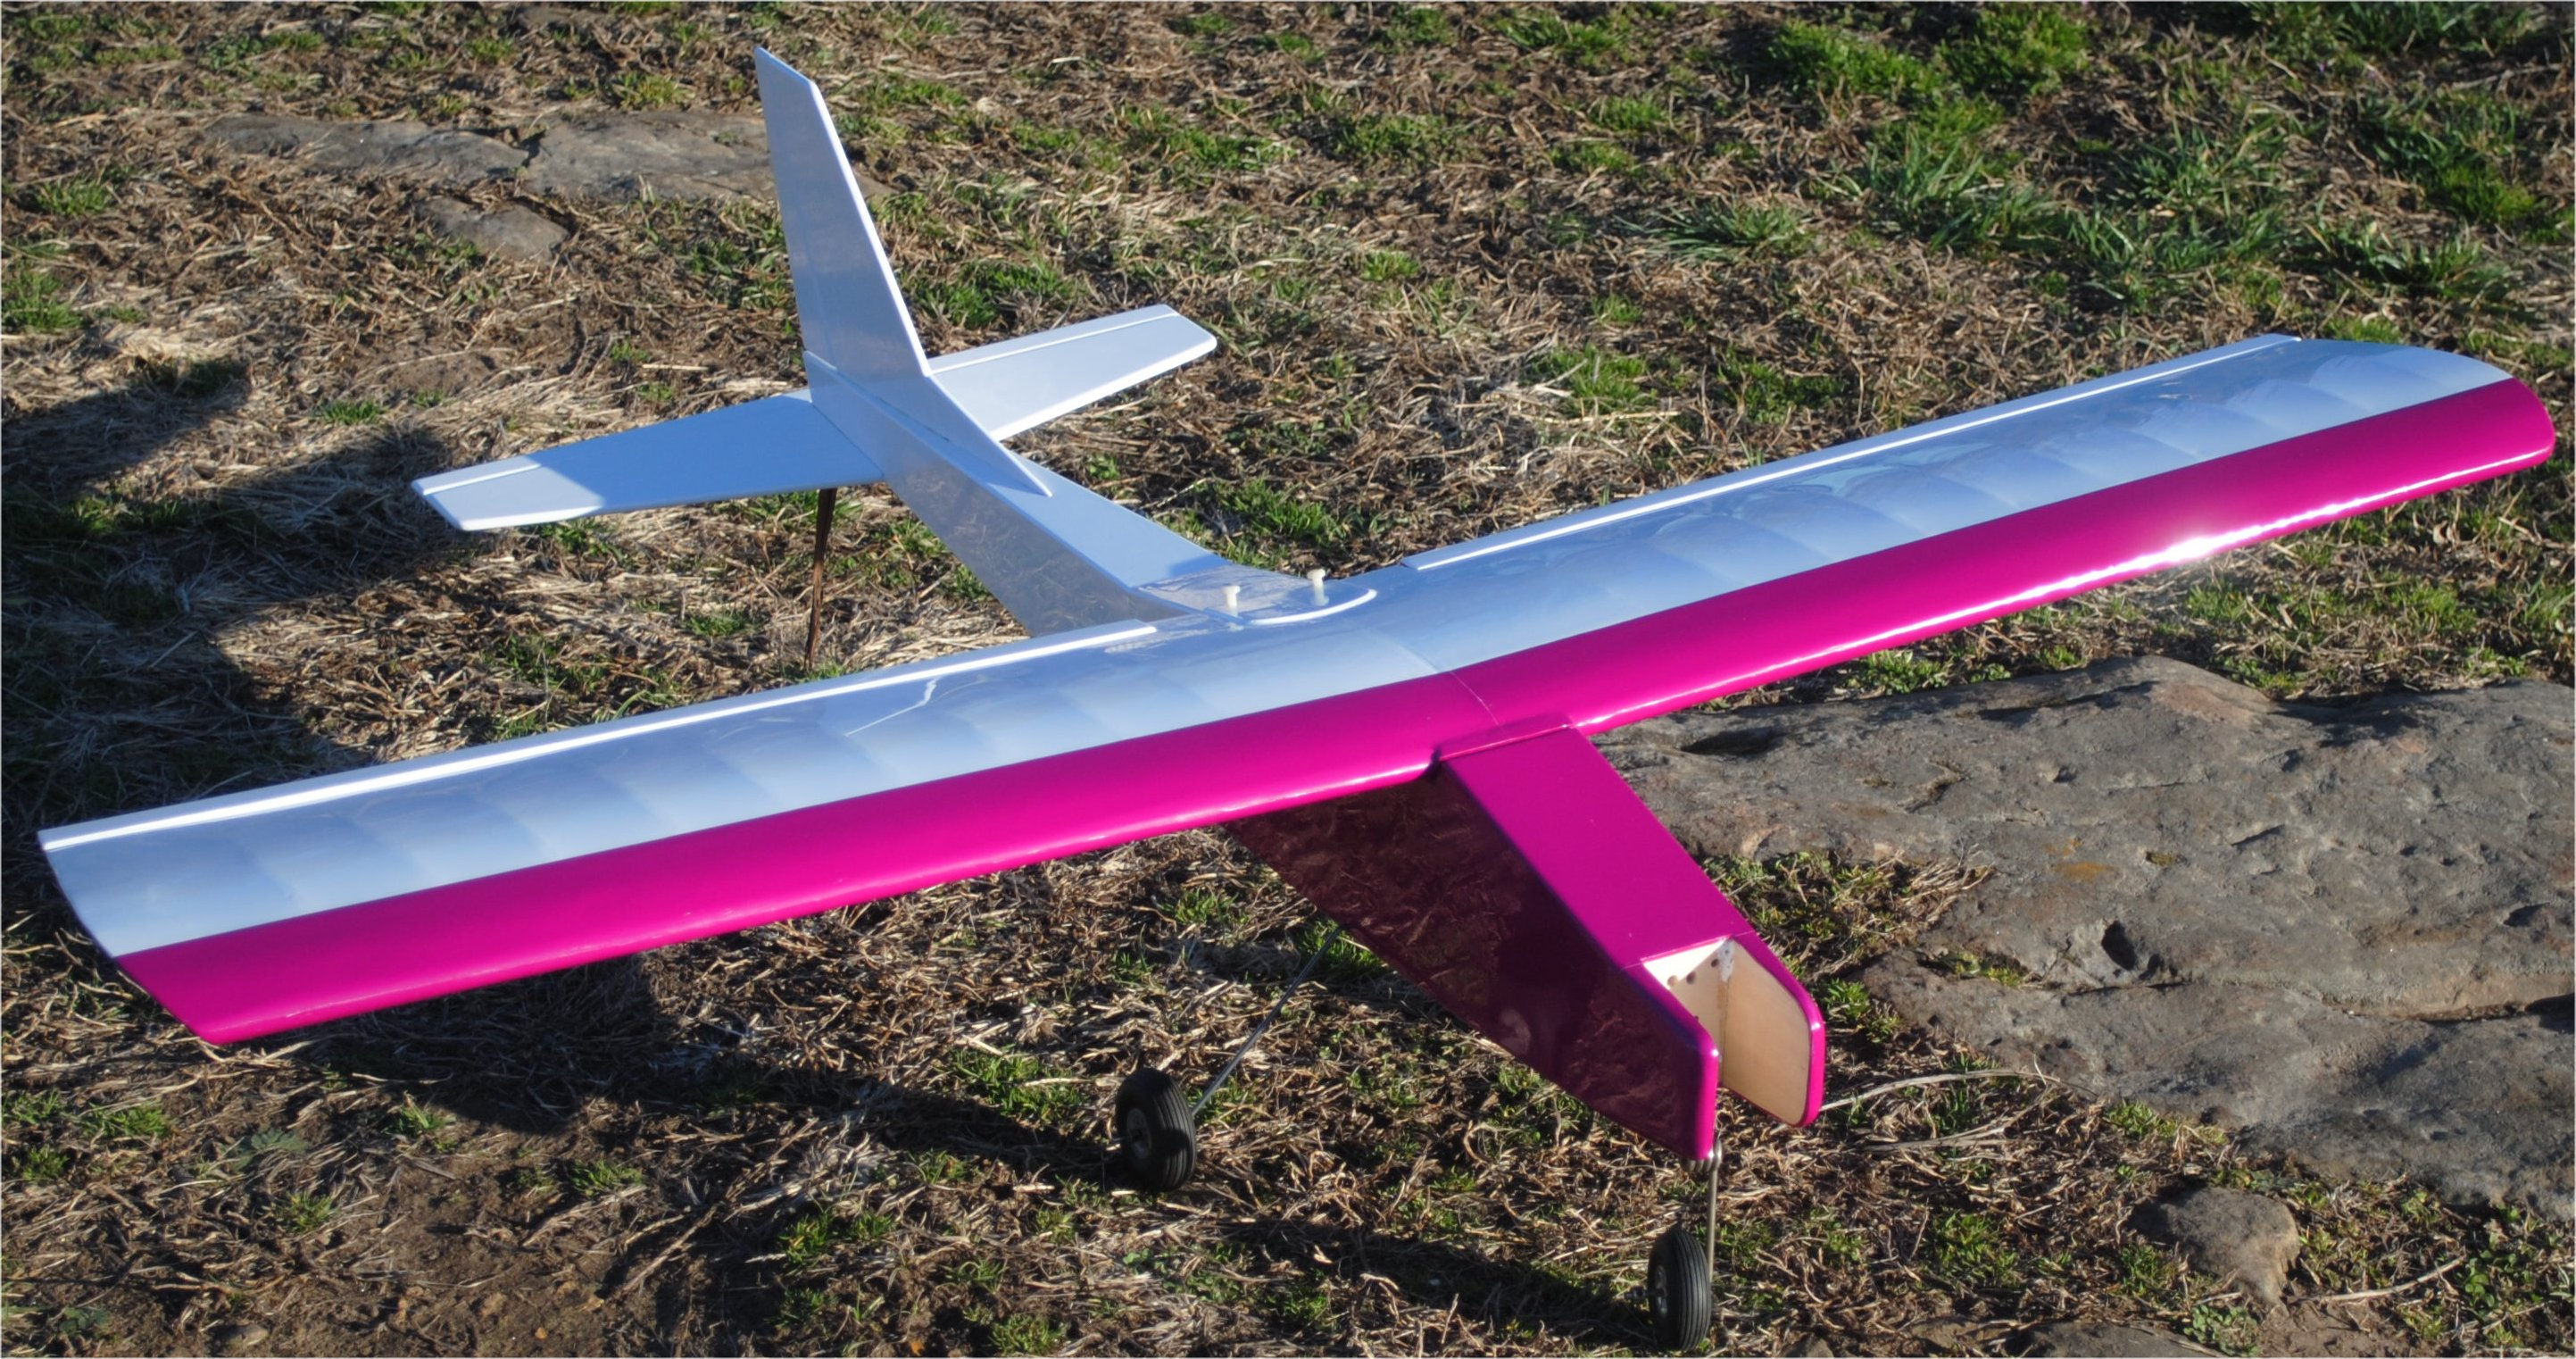 The Aerostar 20 is the same plane but smaller. It has essentially the same flying characteristics, except the smaller wing can't create the same lift per square inch so everything happens a bit quicker, and it has a steeper, faster glide when landing. It's still slow and friendly, but it just feels a little bit more zippy.